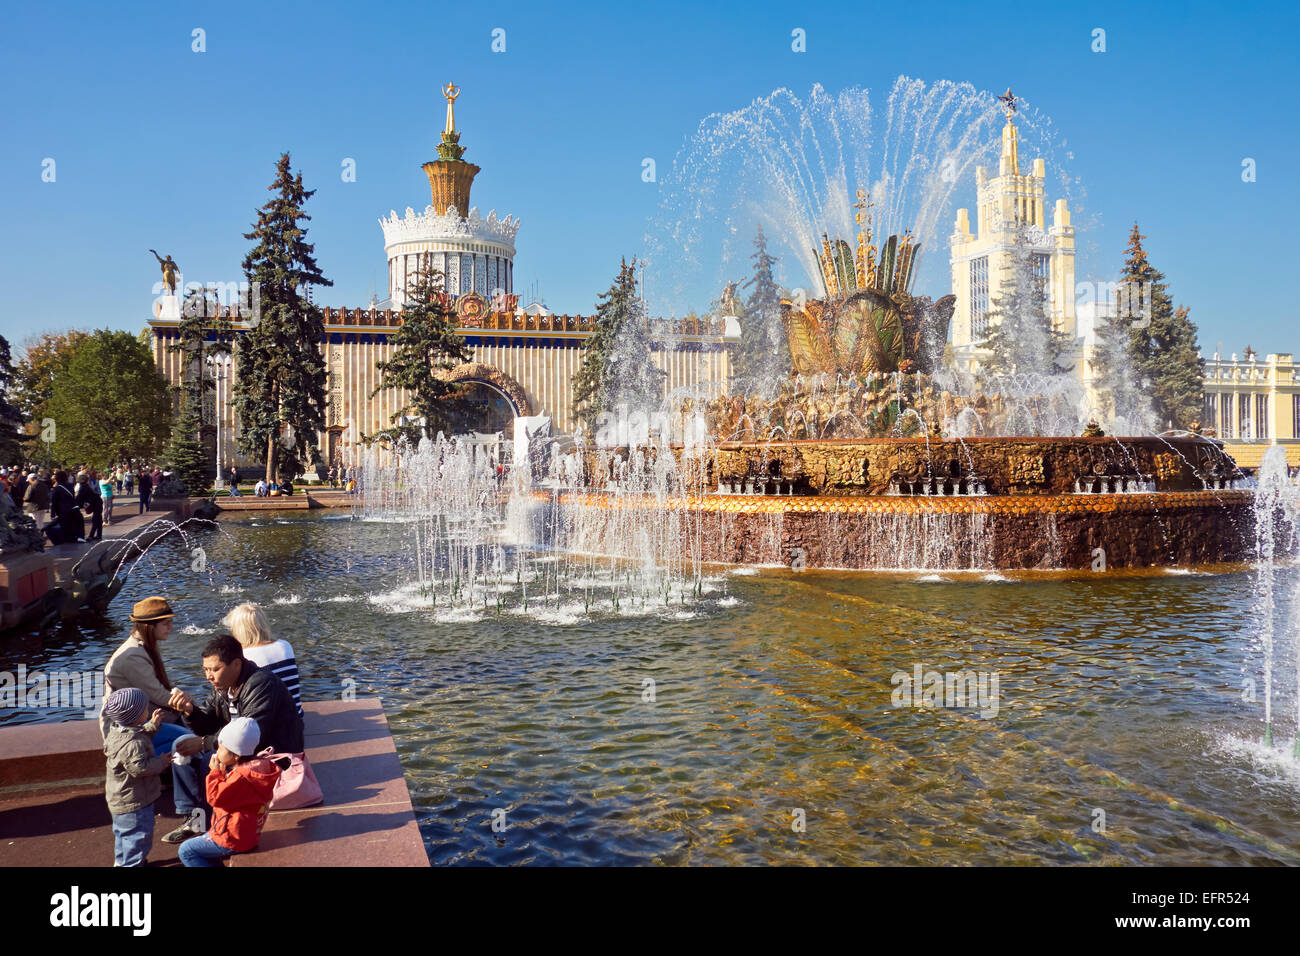 People at The Stone Flower Fountain at the All-Russia Exhibition Centre (VDNKh). Moscow, Russia. Stock Photo